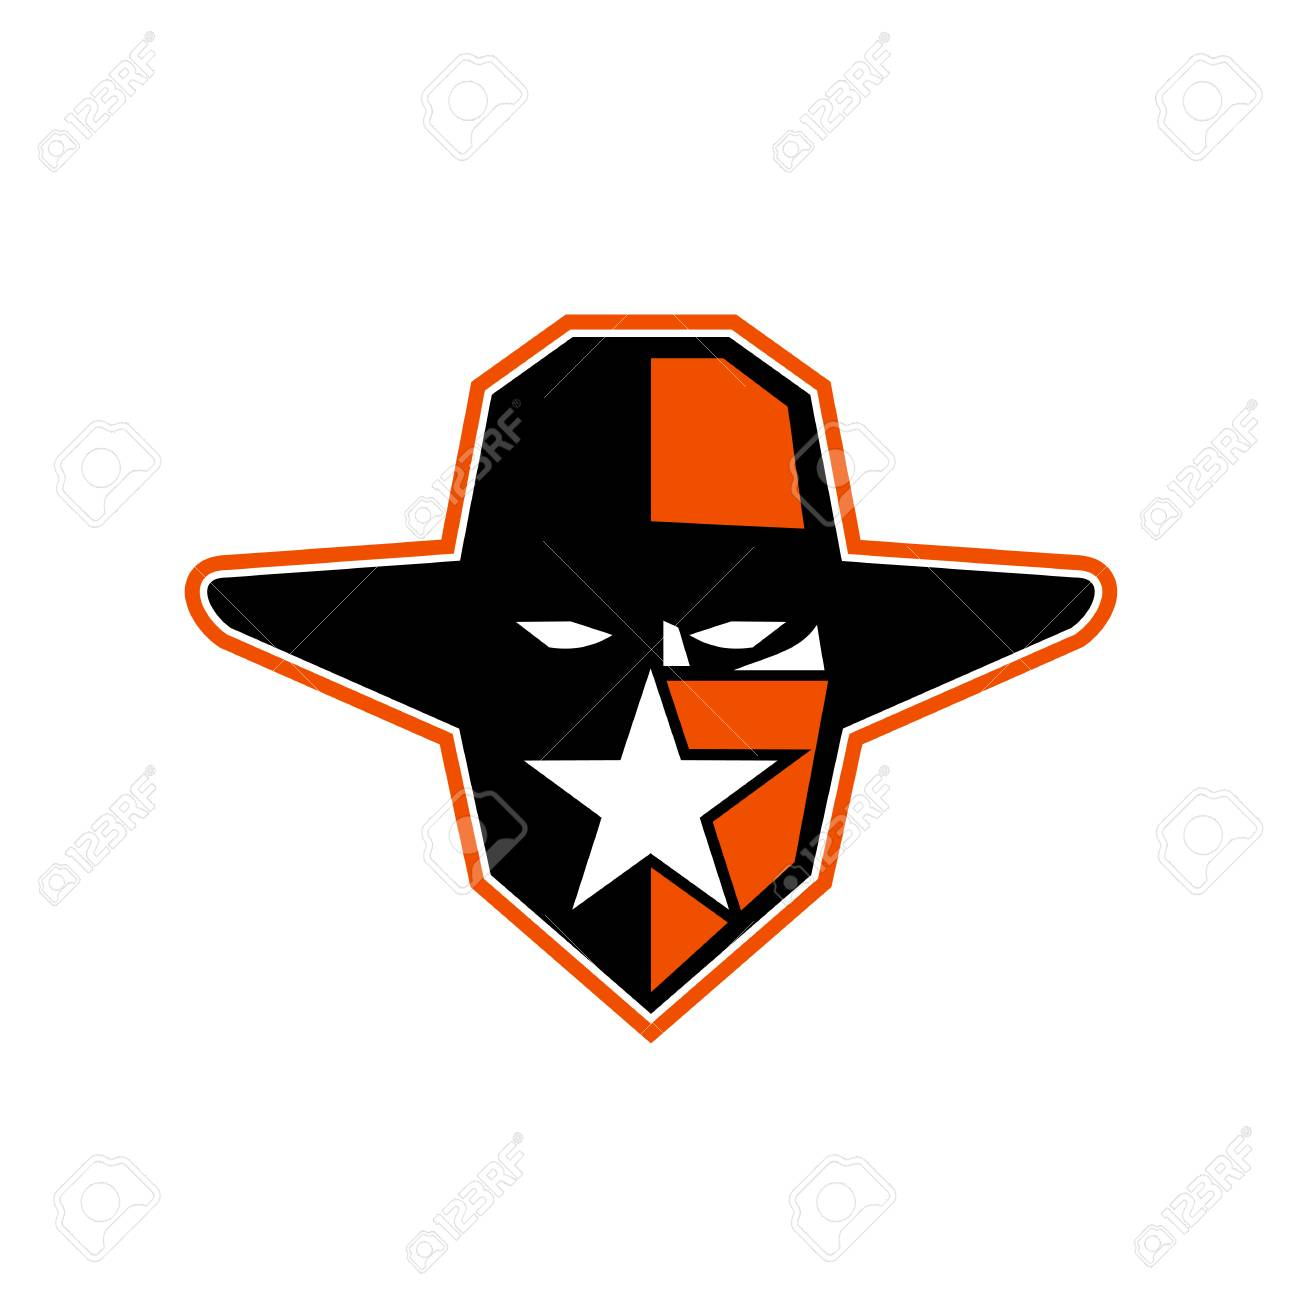 Icon Style Illustration Of An Outlaw Maverick Or Bandit Cowboy Wearing Hat And Star On